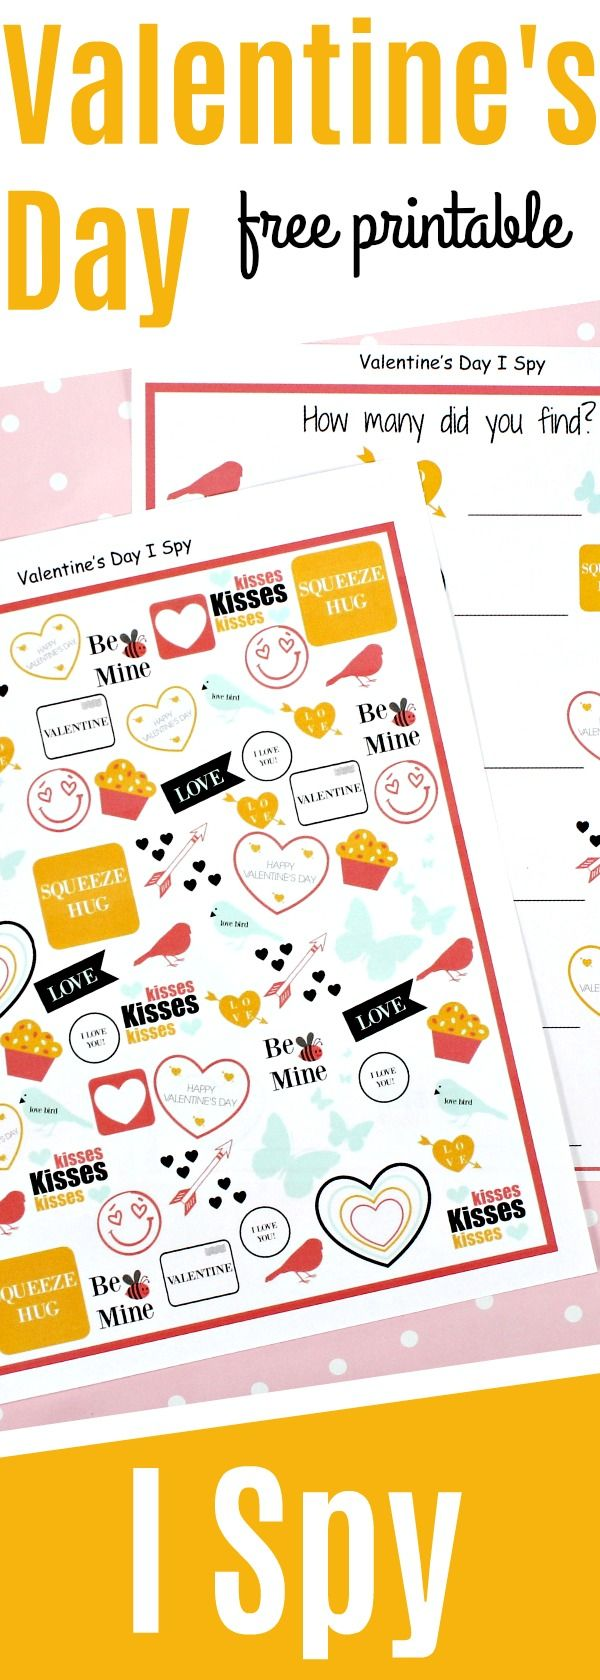 Celebrate Valentine's Day with these fun free printable Valentine's Day I spy game for kids! This is a great Valentine's Day activity for kids of all ages and it's free!